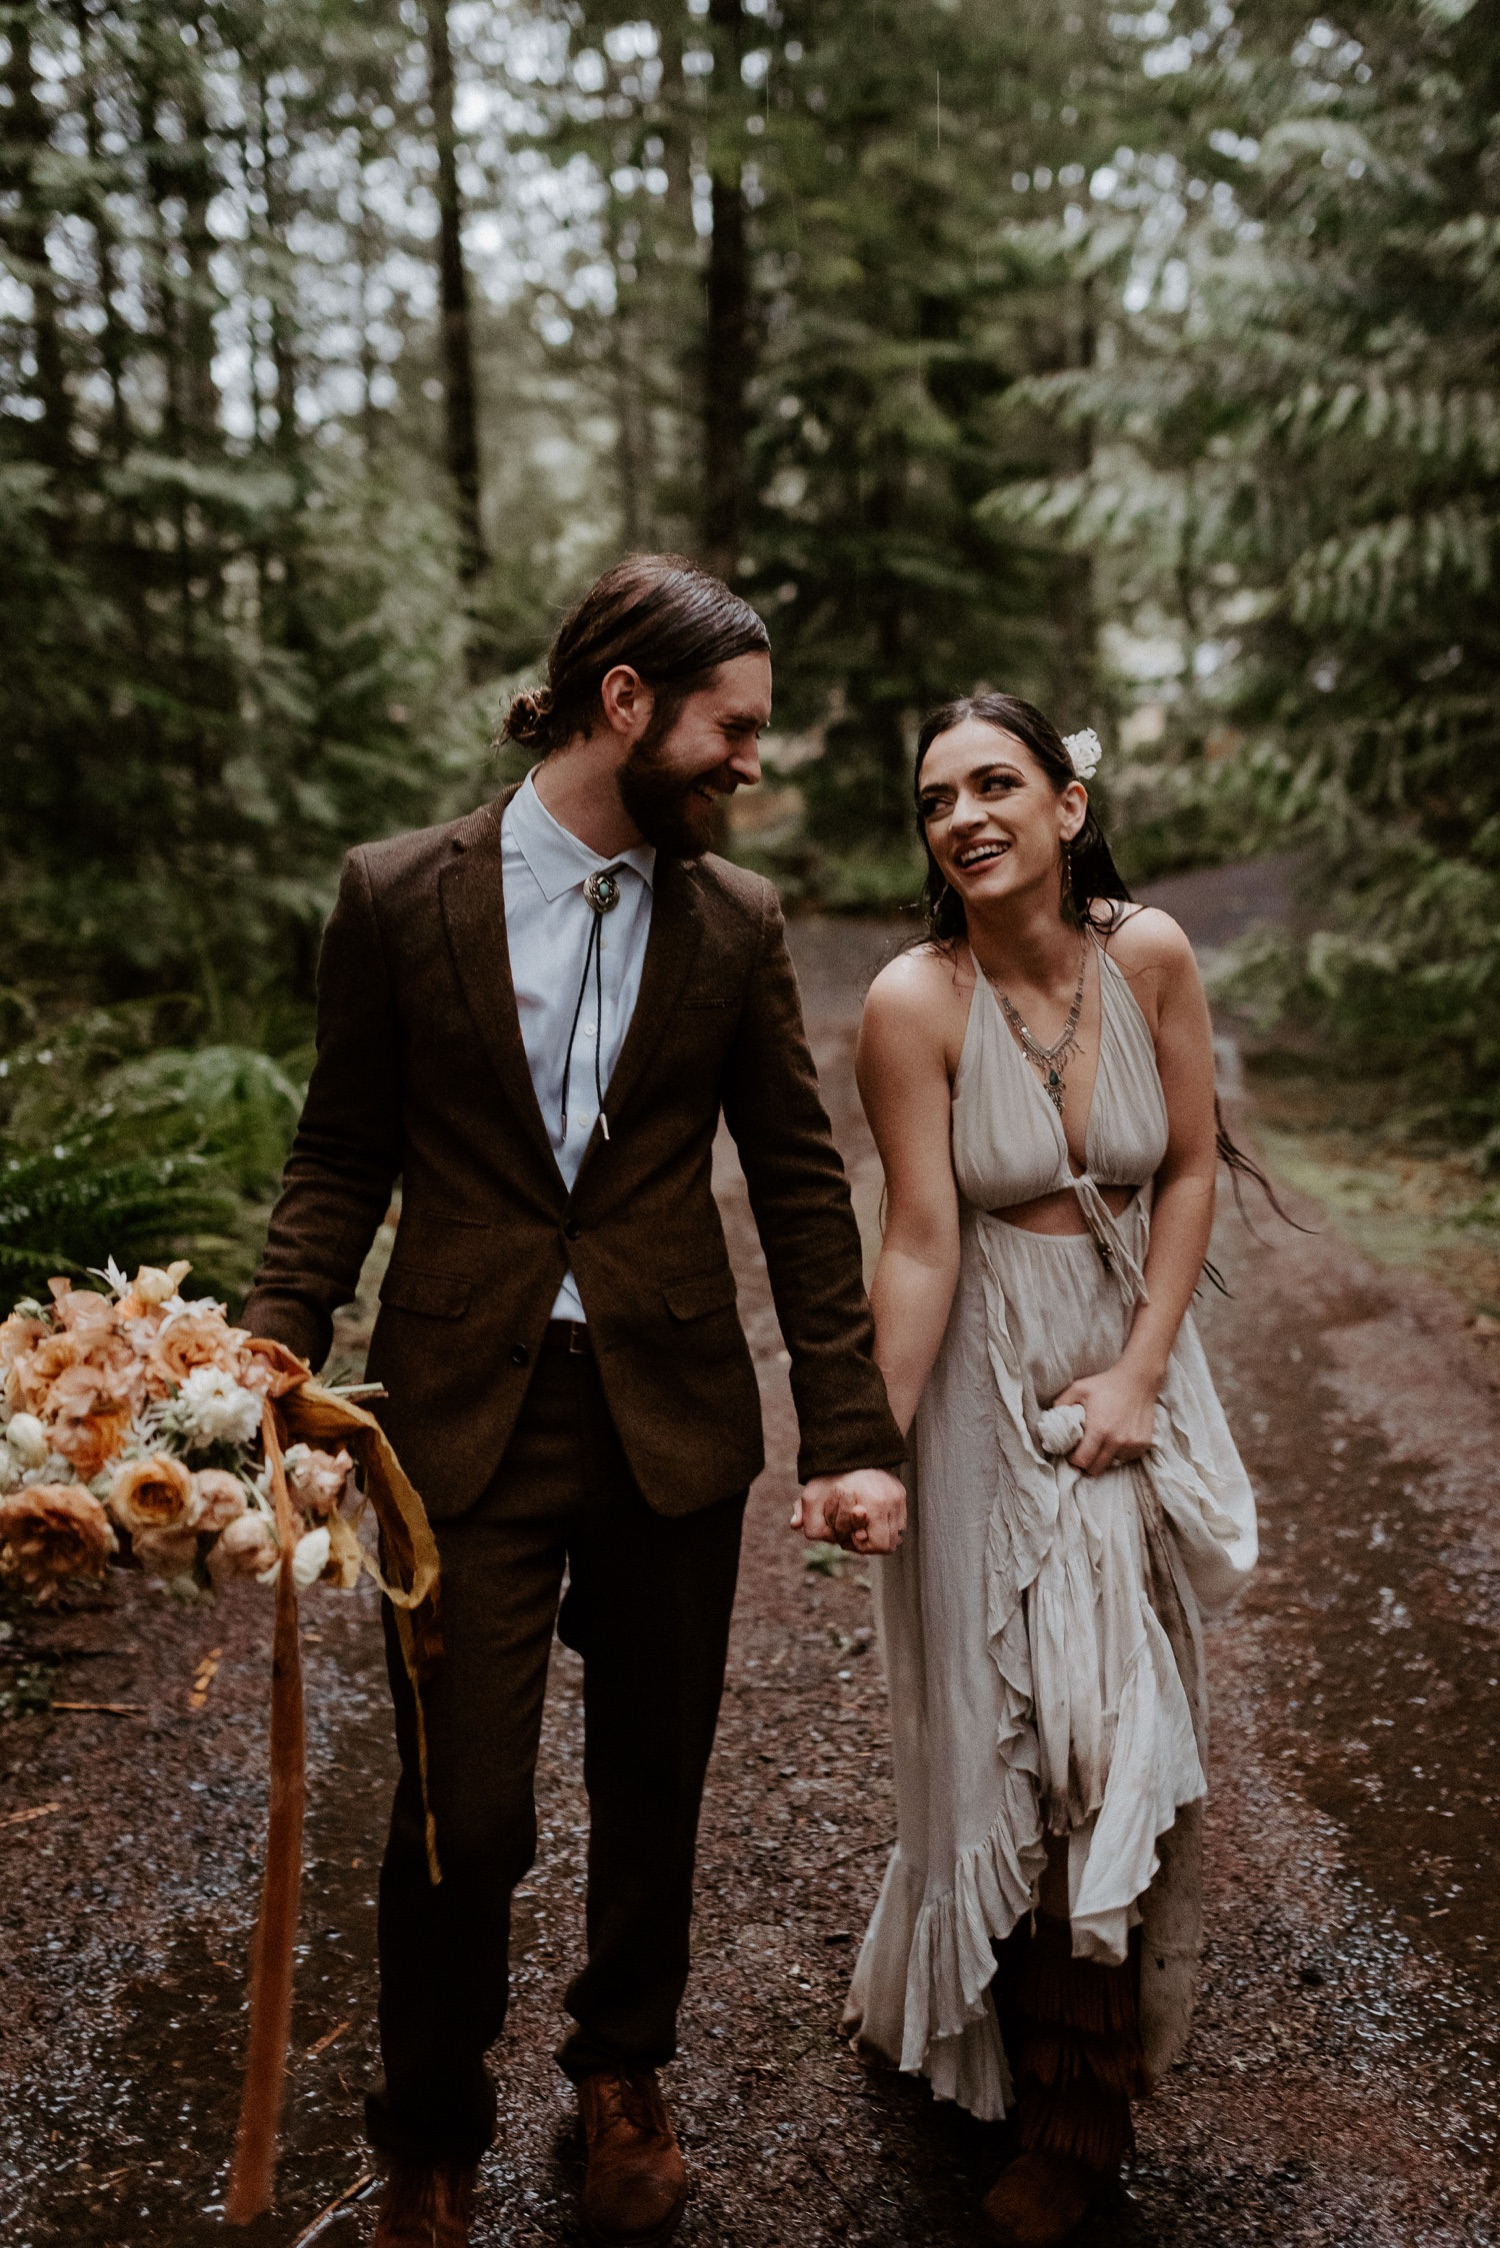 The Woodlands House Sandy Oregon Elopement Portland Elopement Photographer PNW Adventurous Elopement Anais Possamai Photography 036